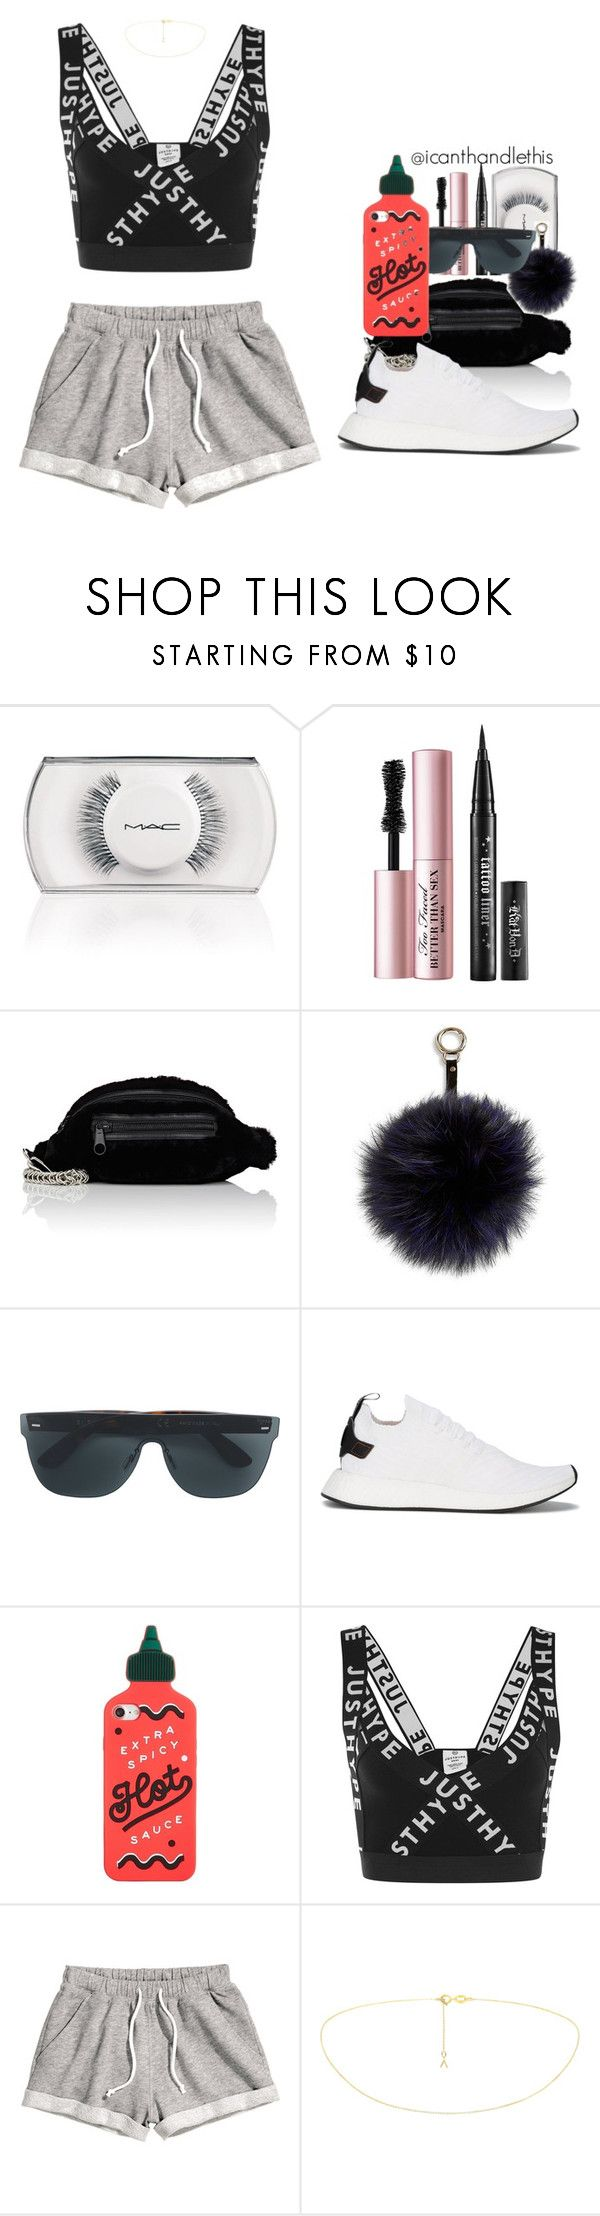 """""""Aazar - Gyal (Samba Dance Festival)"""" by icanthandlethis ❤ liked on Polyvore featuring MAC Cosmetics, Too Faced Cosmetics, Alexander Wang, Adrienne Landau, RetroSuperFuture, adidas Originals, ban.do, Hype and H&M"""